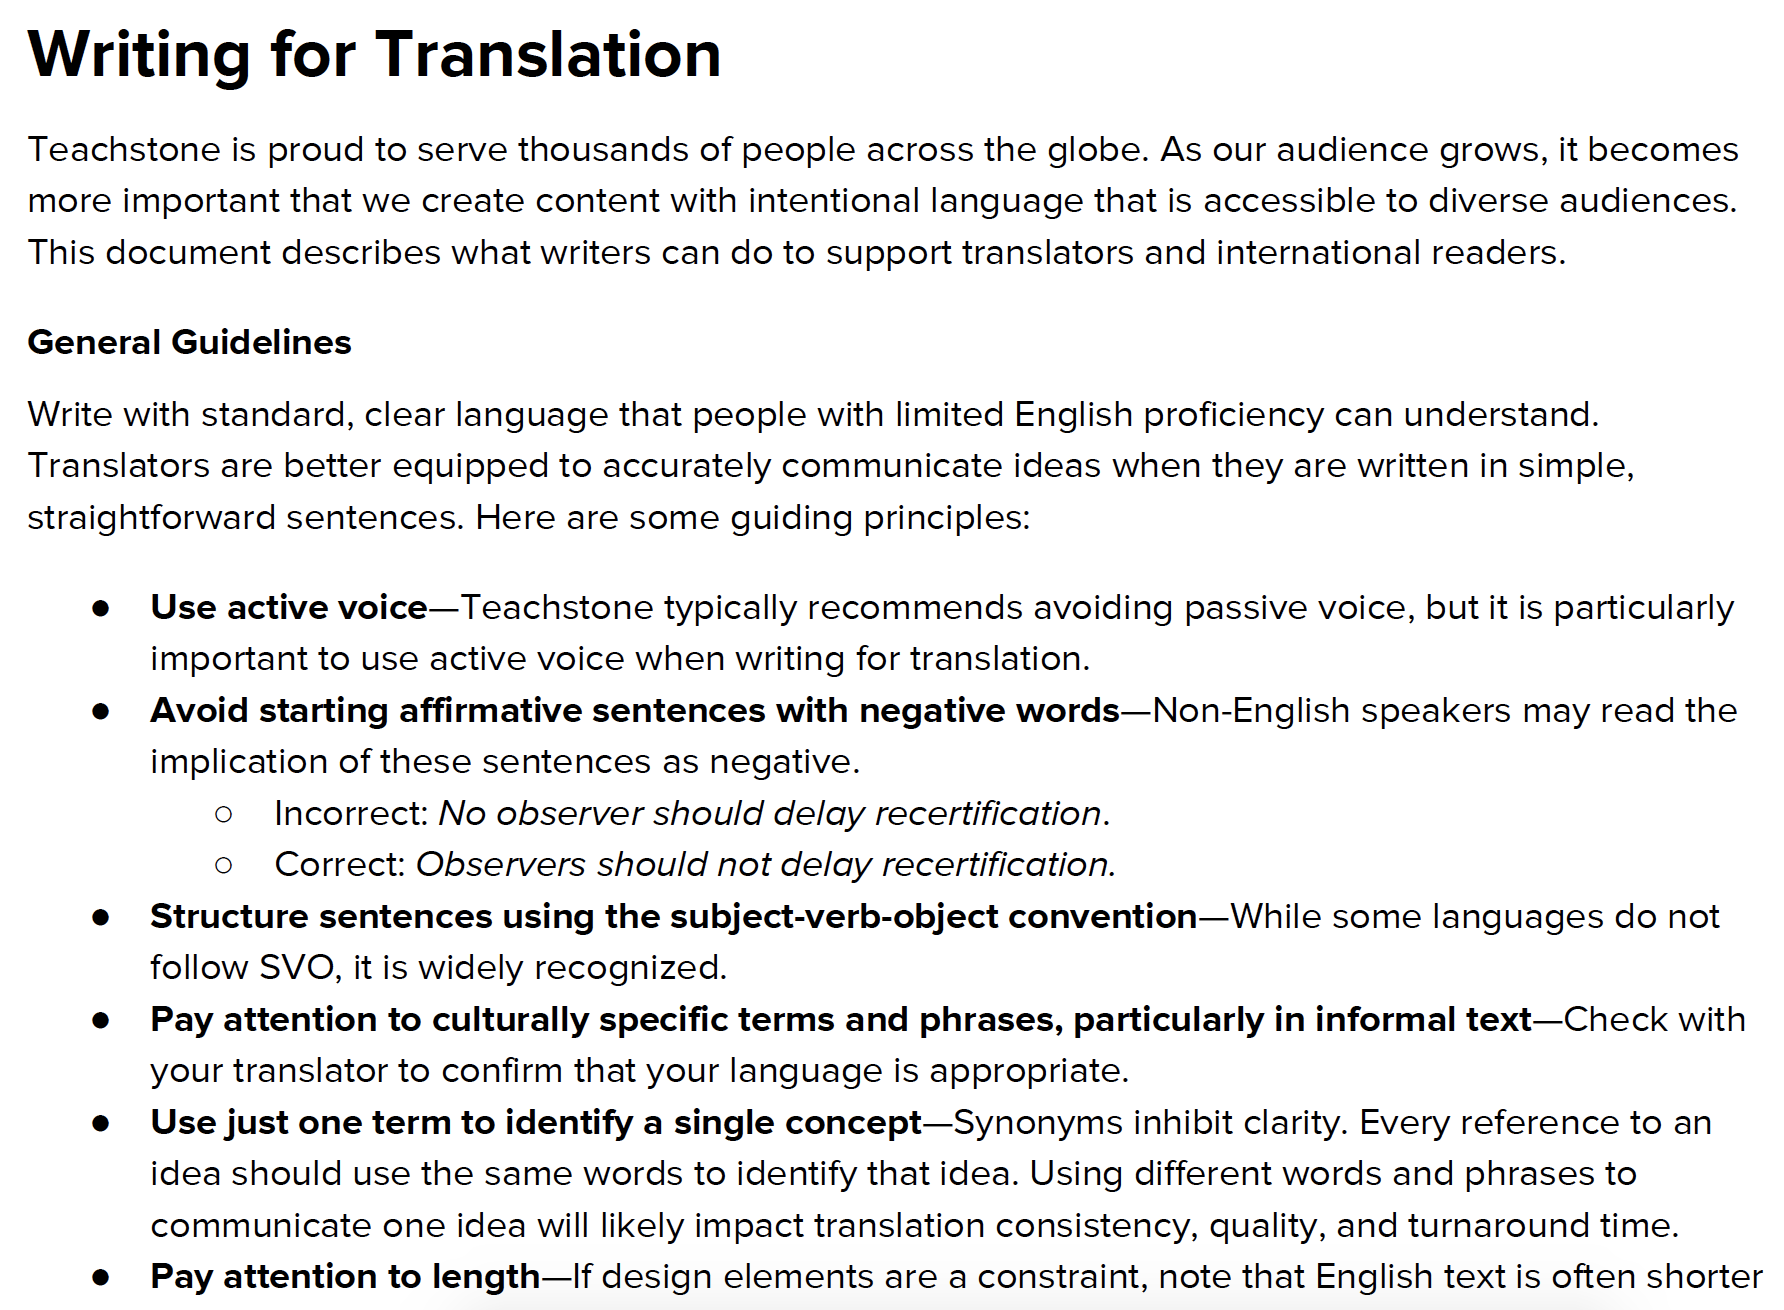 Writing for Translation Guidelines -